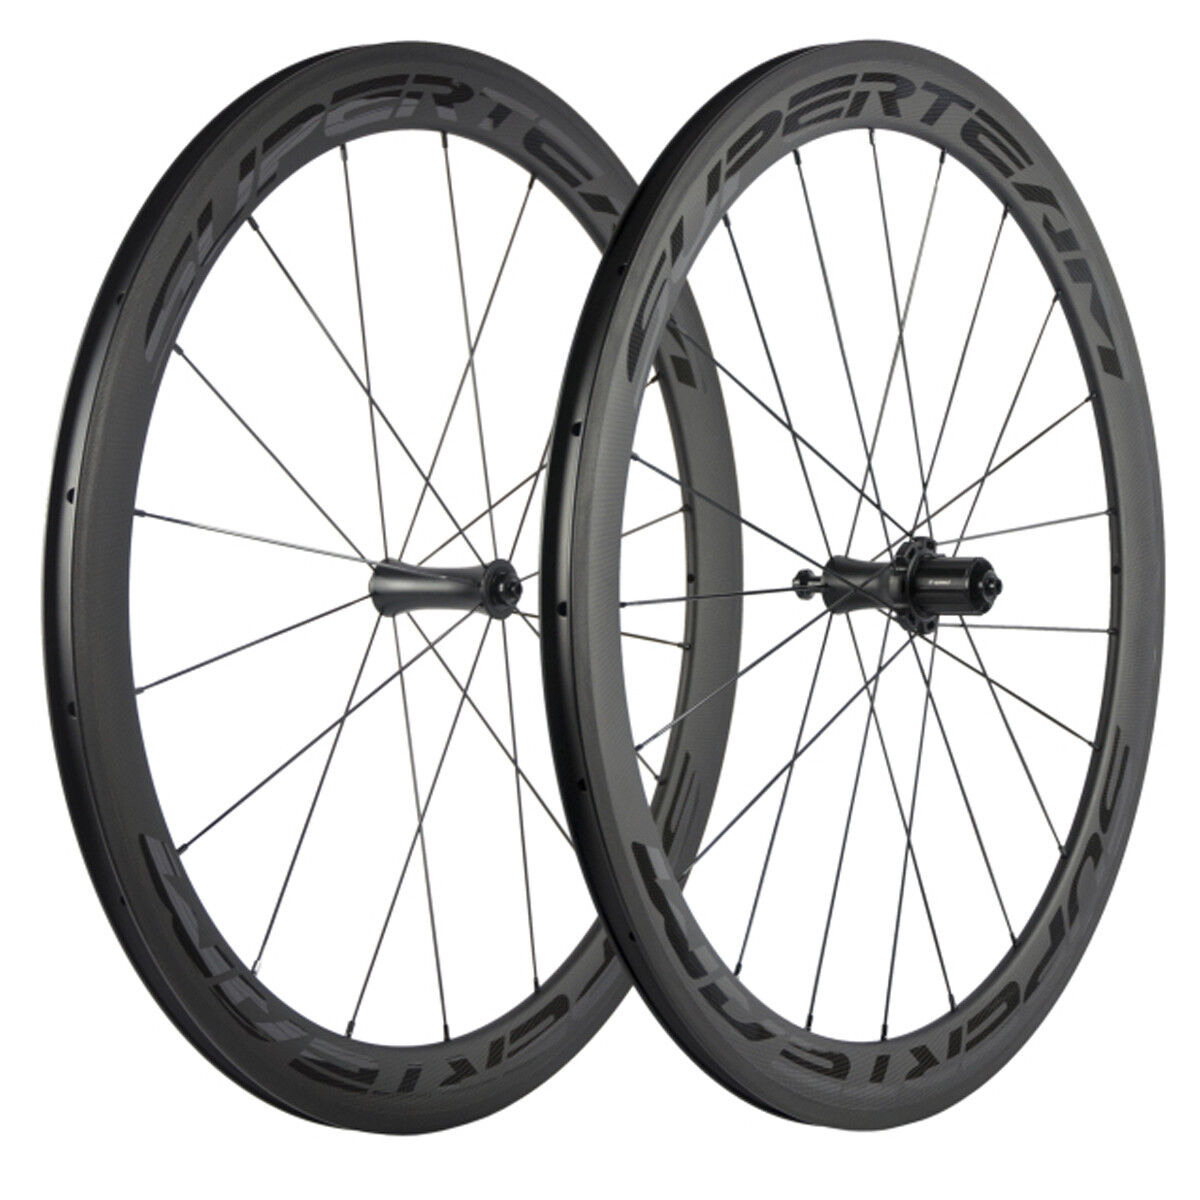 Superteam Carbon Wheelset R7 Hub 50mm Clincher Road Bike Wheels Matte Finsh New